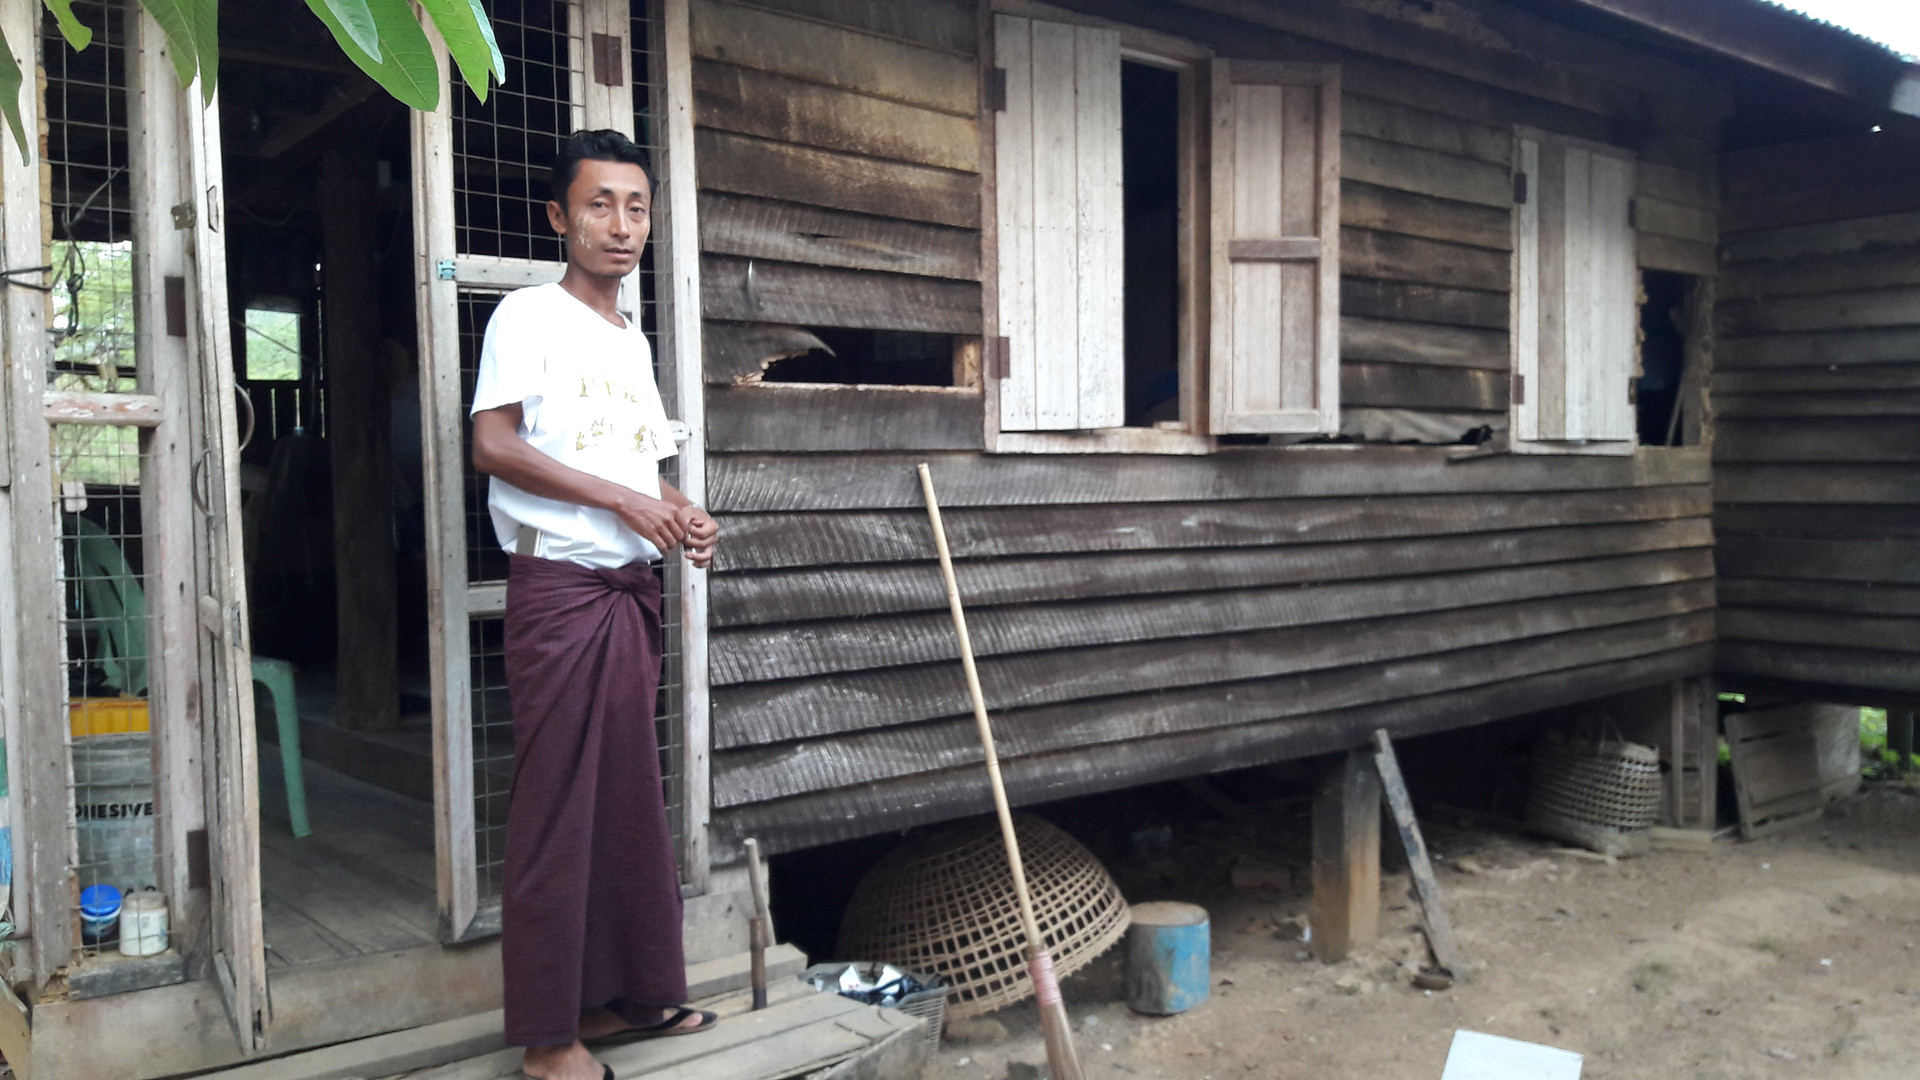 New service home in Myanmar